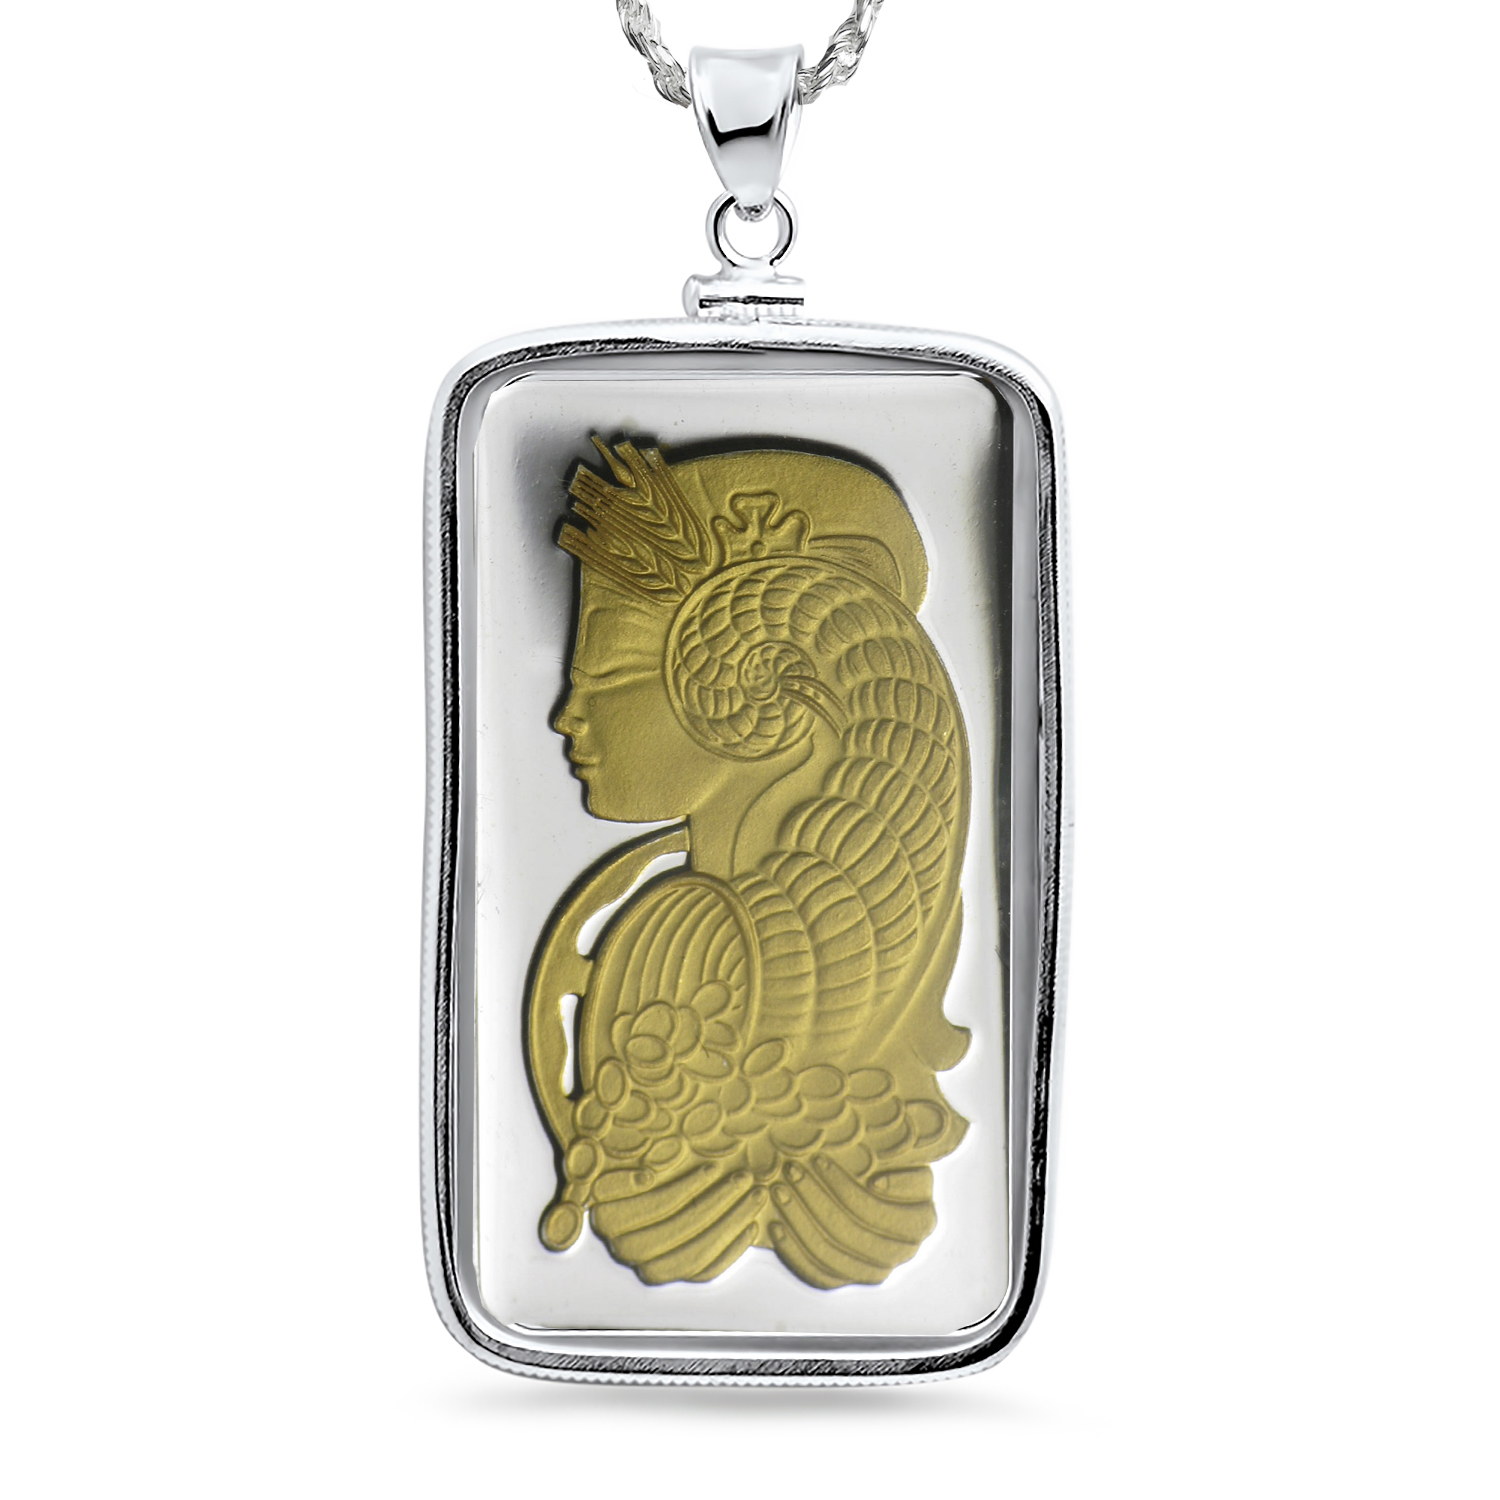 5 gram Silver - Gilded PAMP Suisse Fortuna Pendant (w/Chain)